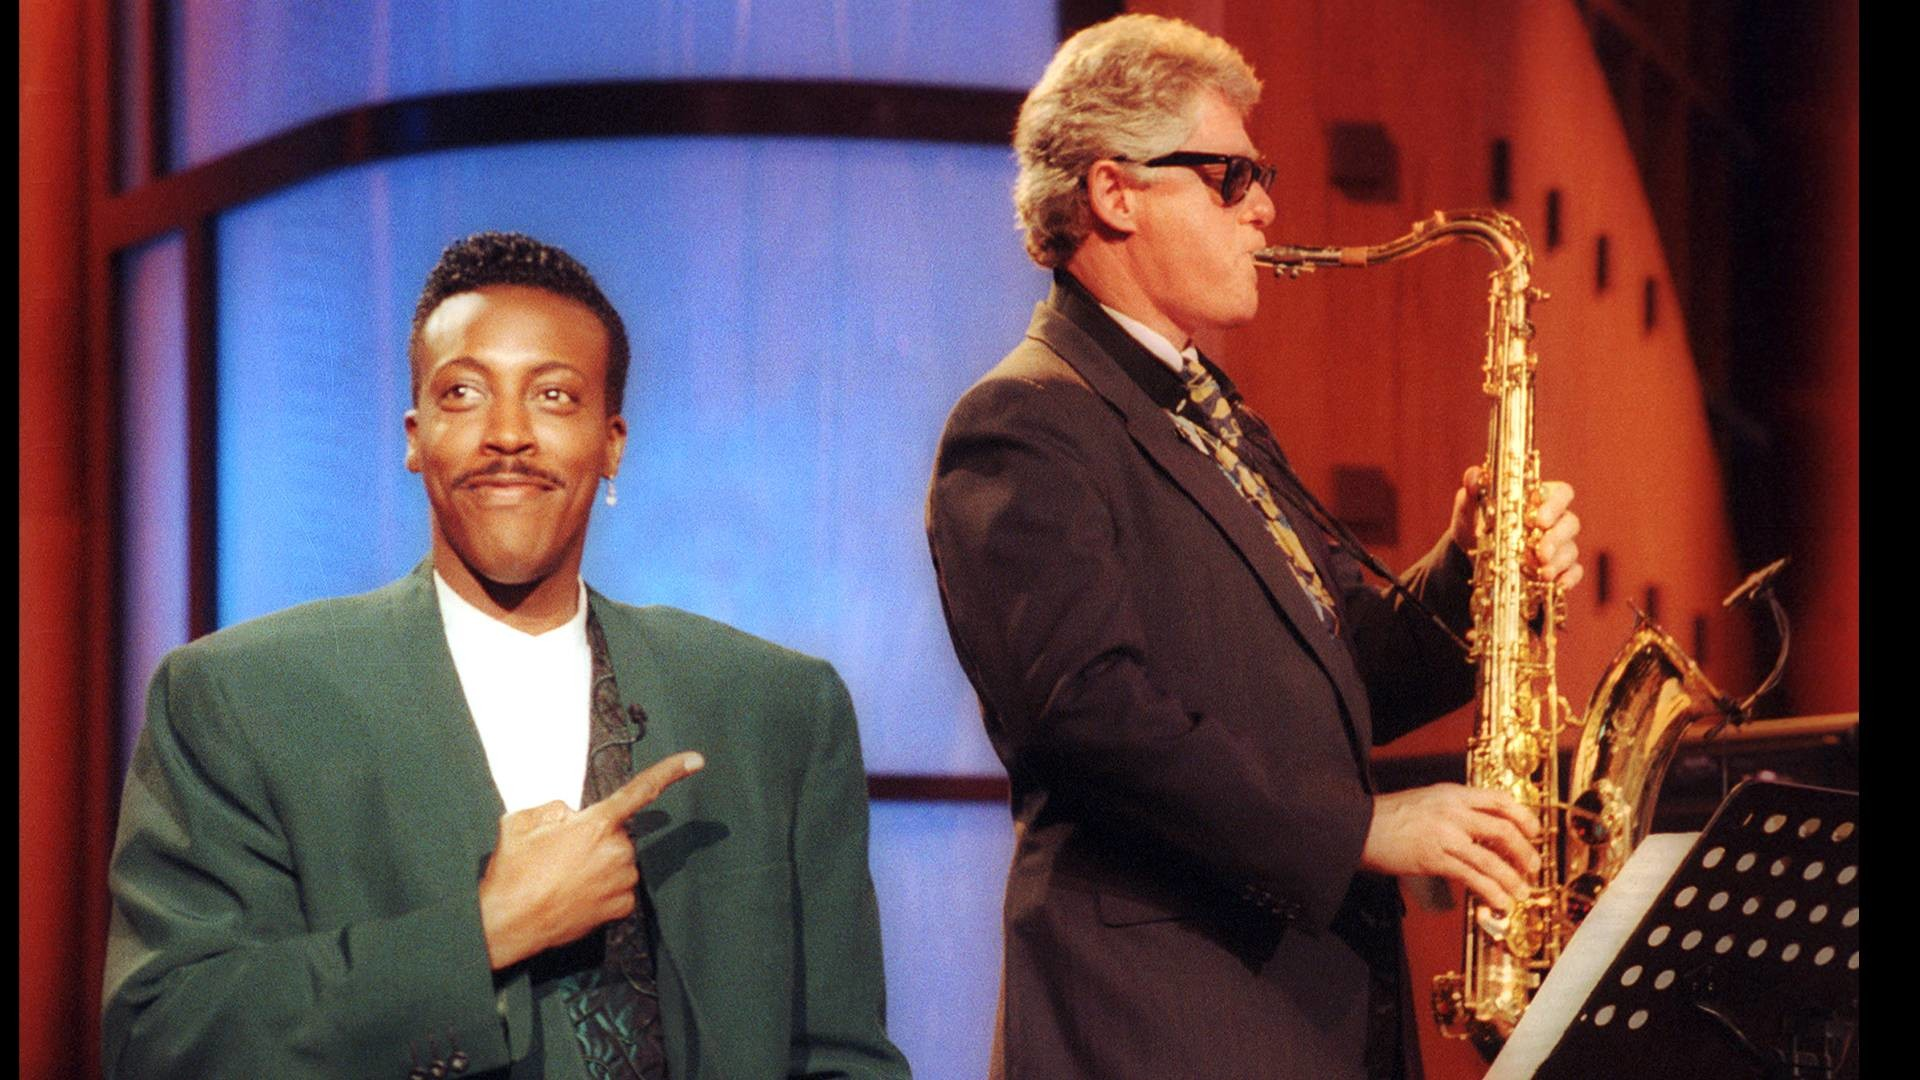 Bill Clinton playing the sax on the Arsenio Hall show (1992) …